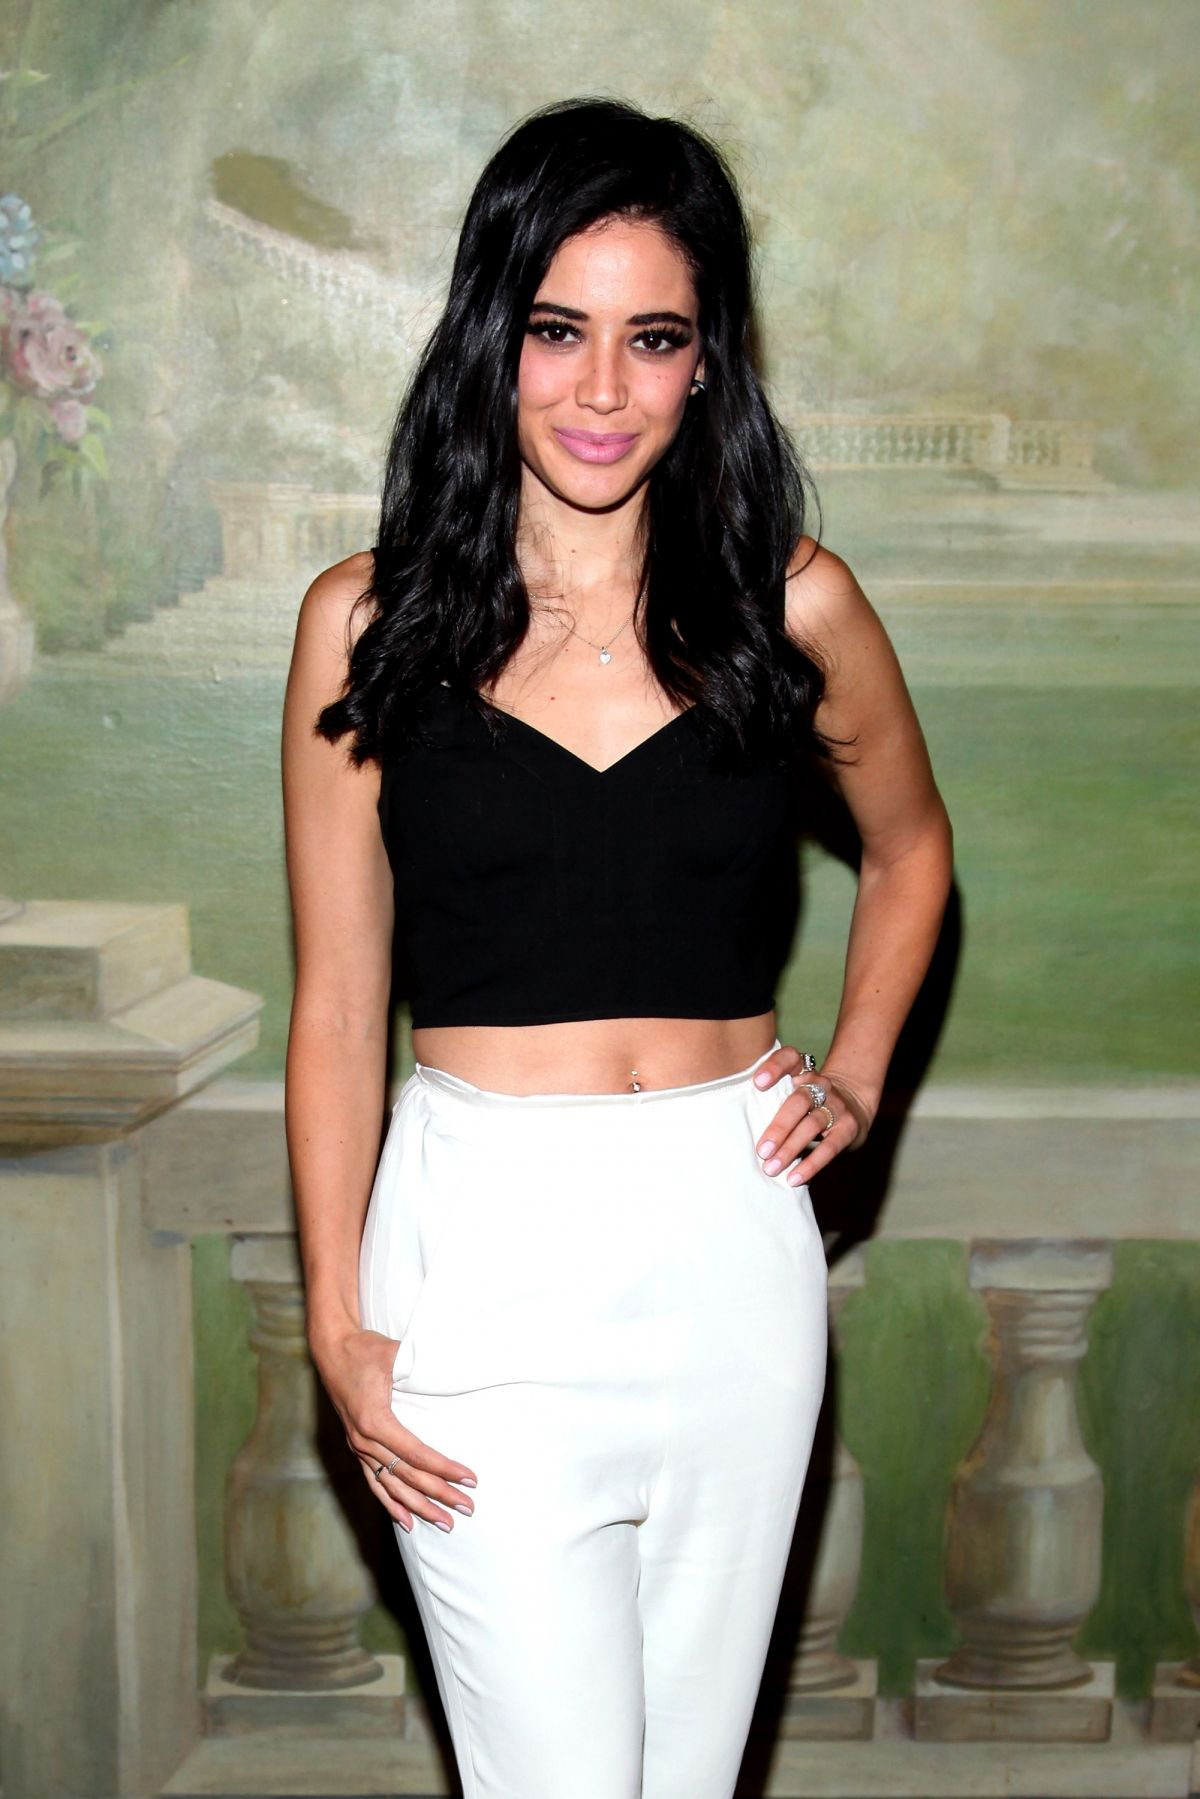 ADY GANEM at Alice+Olivia by Stacey Bendet Fashion Show in New York